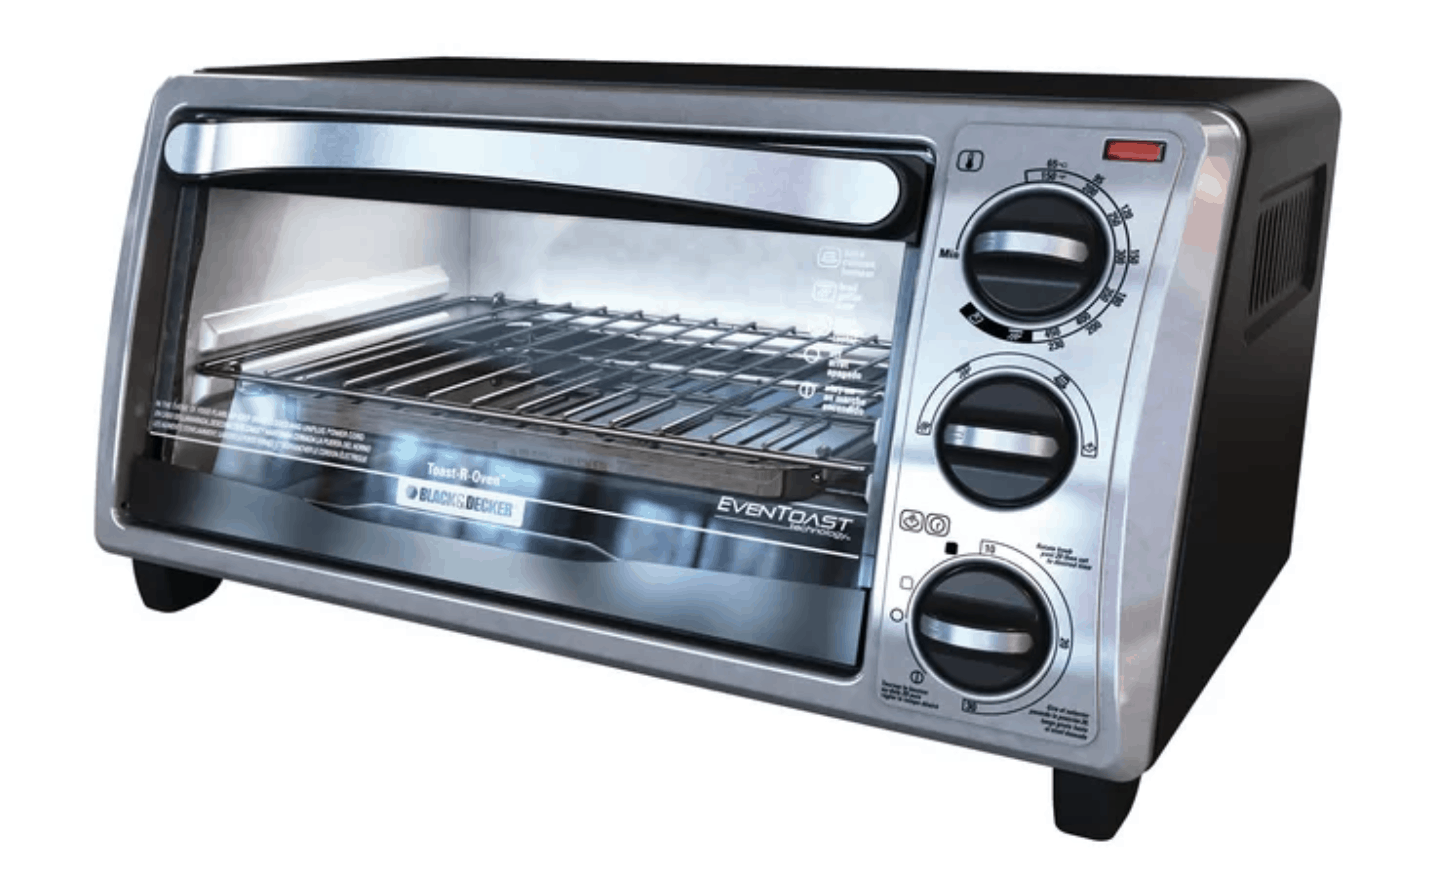 18 Best Small Toaster Oven Options for 2018